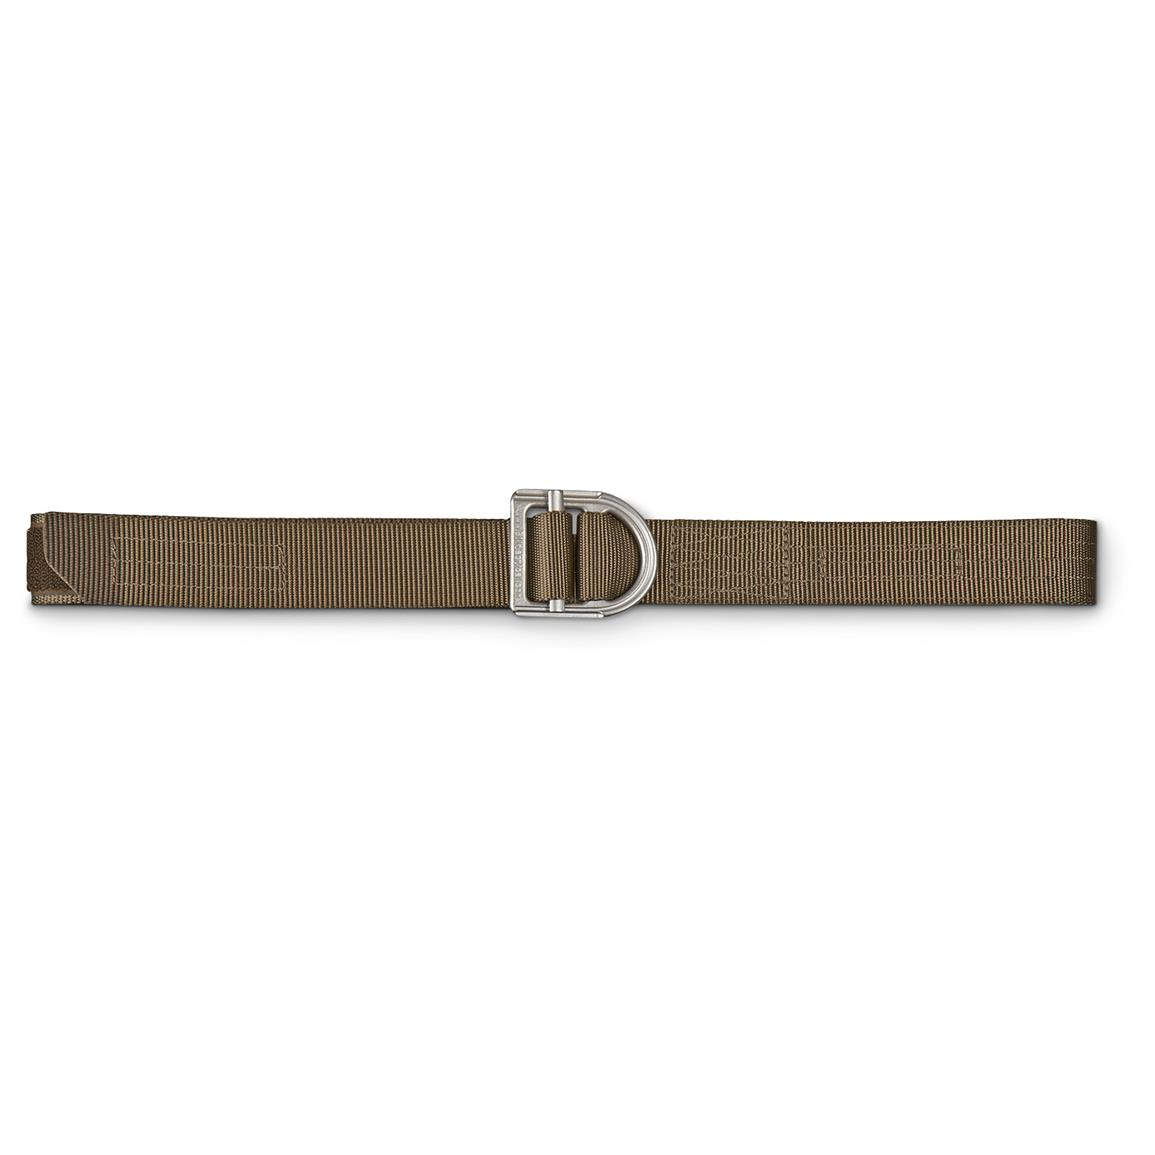 "5.11 Tactical 1 1/2"" Wide Trainer Belt, Tundra"